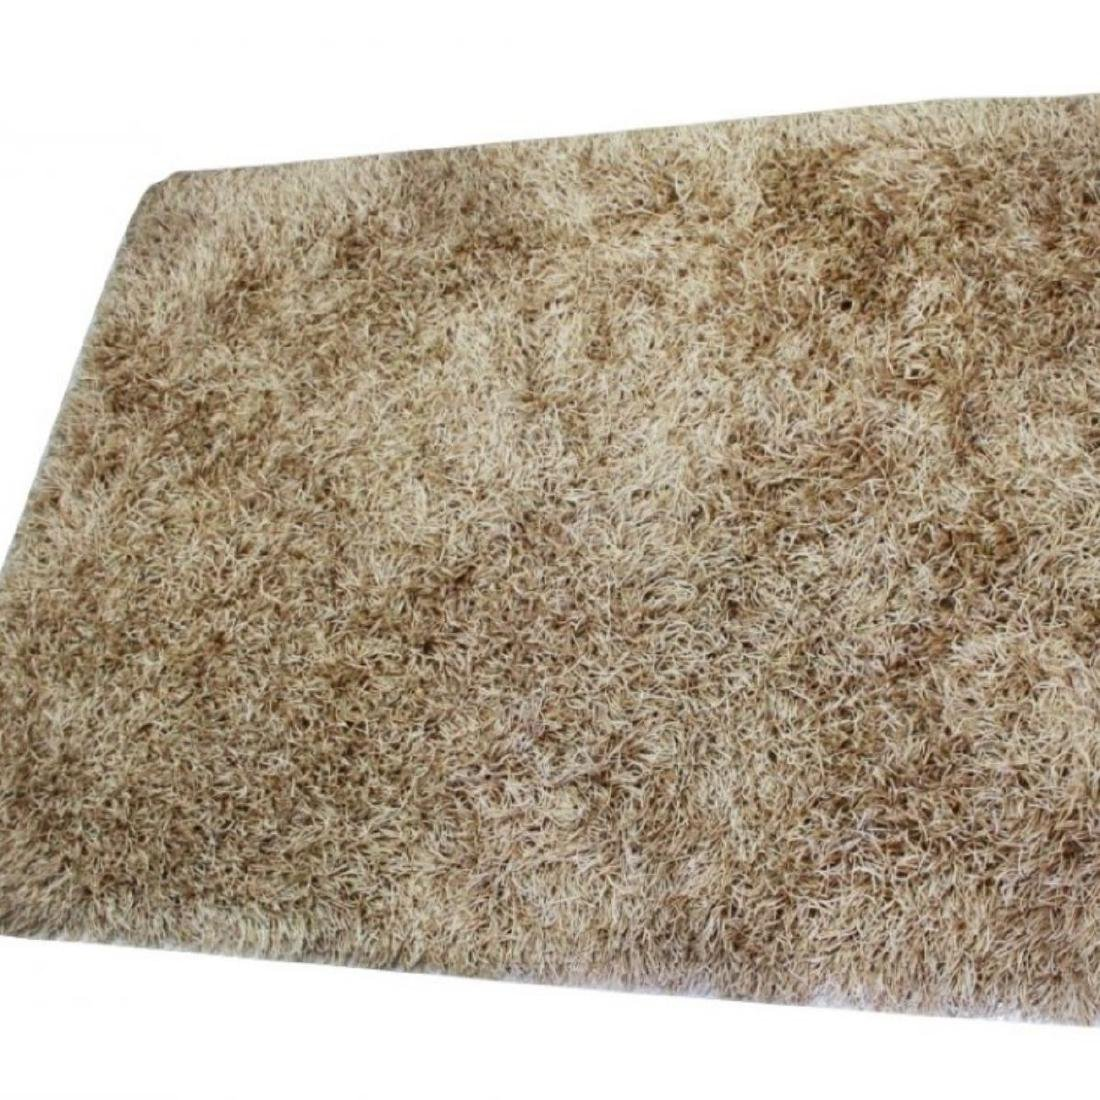 GOLD HAND KNOTTED AREA RUG